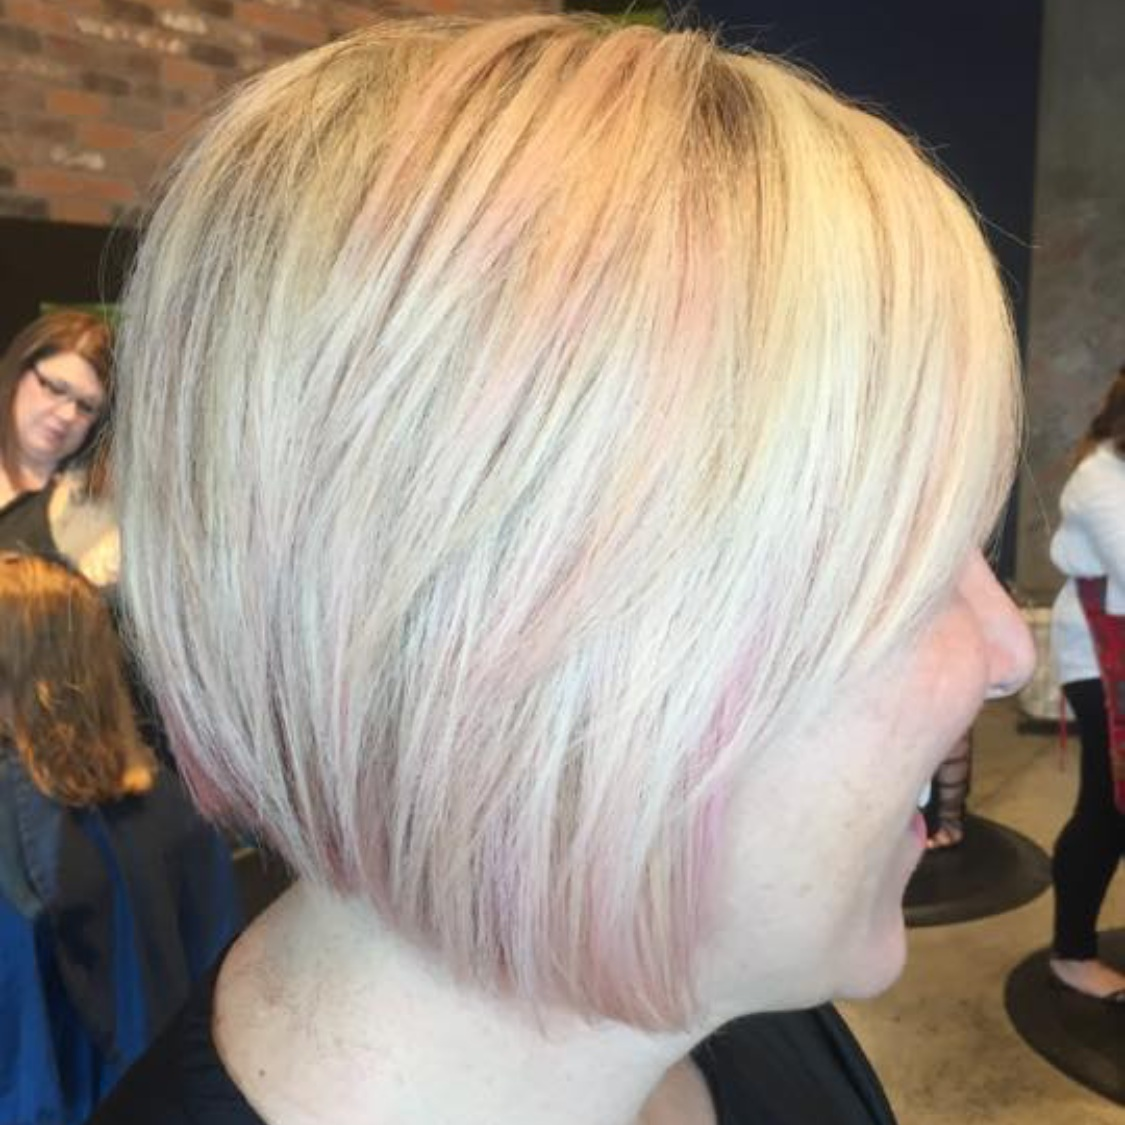 Rebecca Crosby Stylist Artistik Edge Hair Salon Lake Highlands Texas Blonde Pink Bob.png